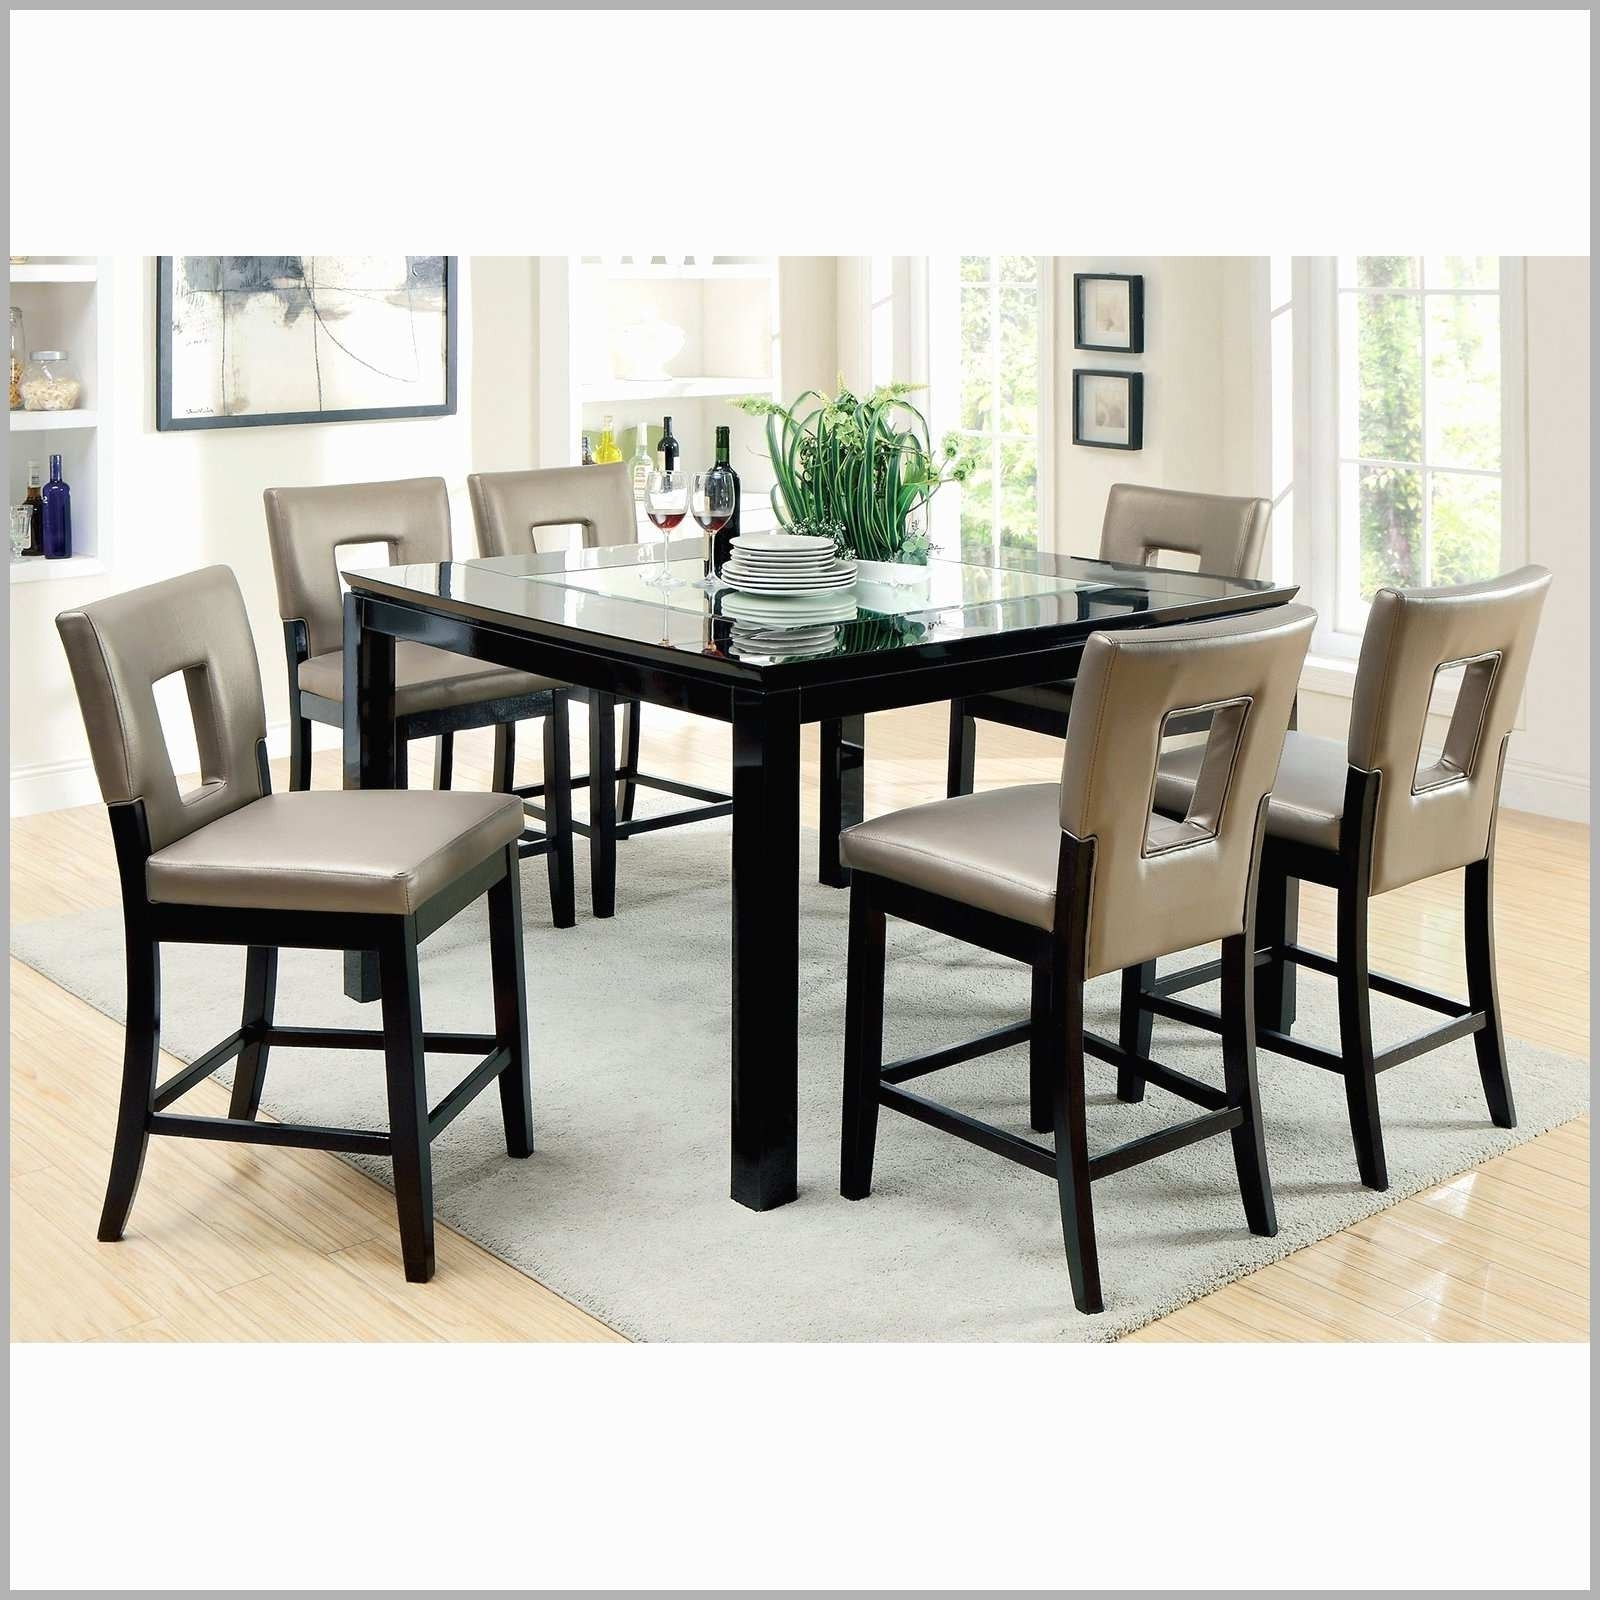 Extending Dining Table Sets Regarding Most Up To Date White High Gloss Extending Dining Table Luxury 8 Seater Dining Table (Gallery 8 of 25)